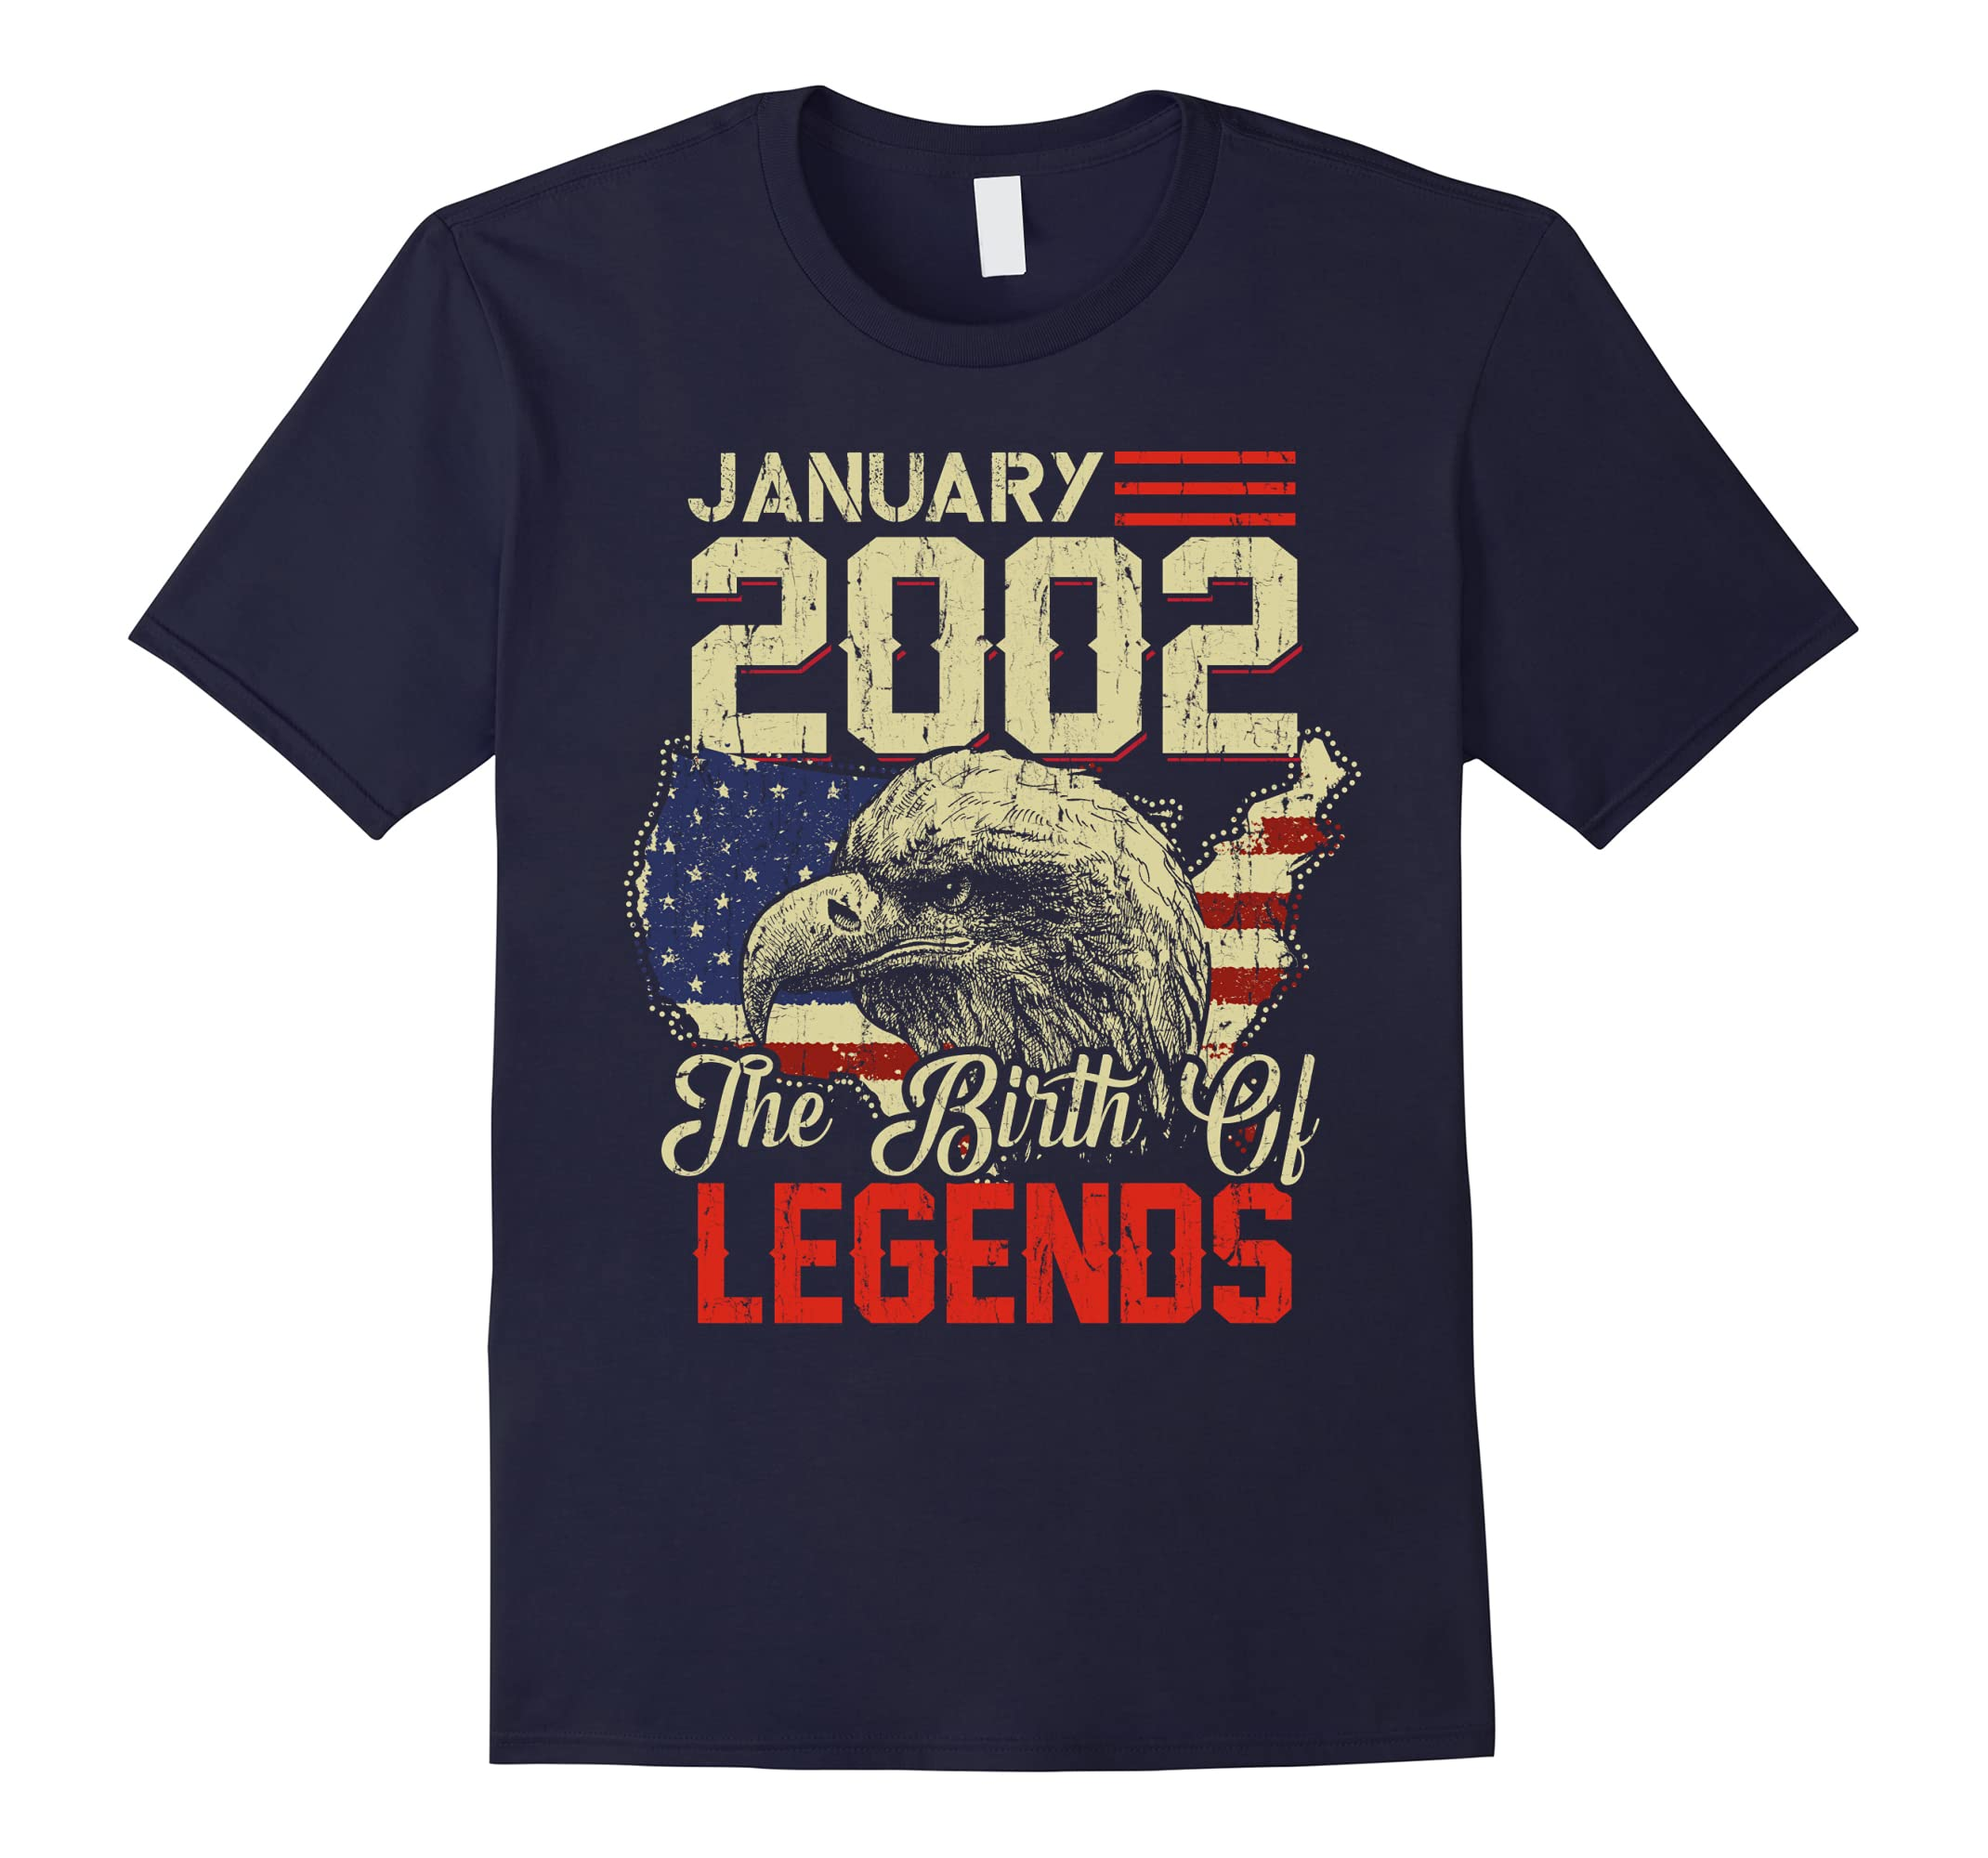 2002 JANUARY Vintage The Birth Of Legends 16 Years Old Being-ah my shirt one gift